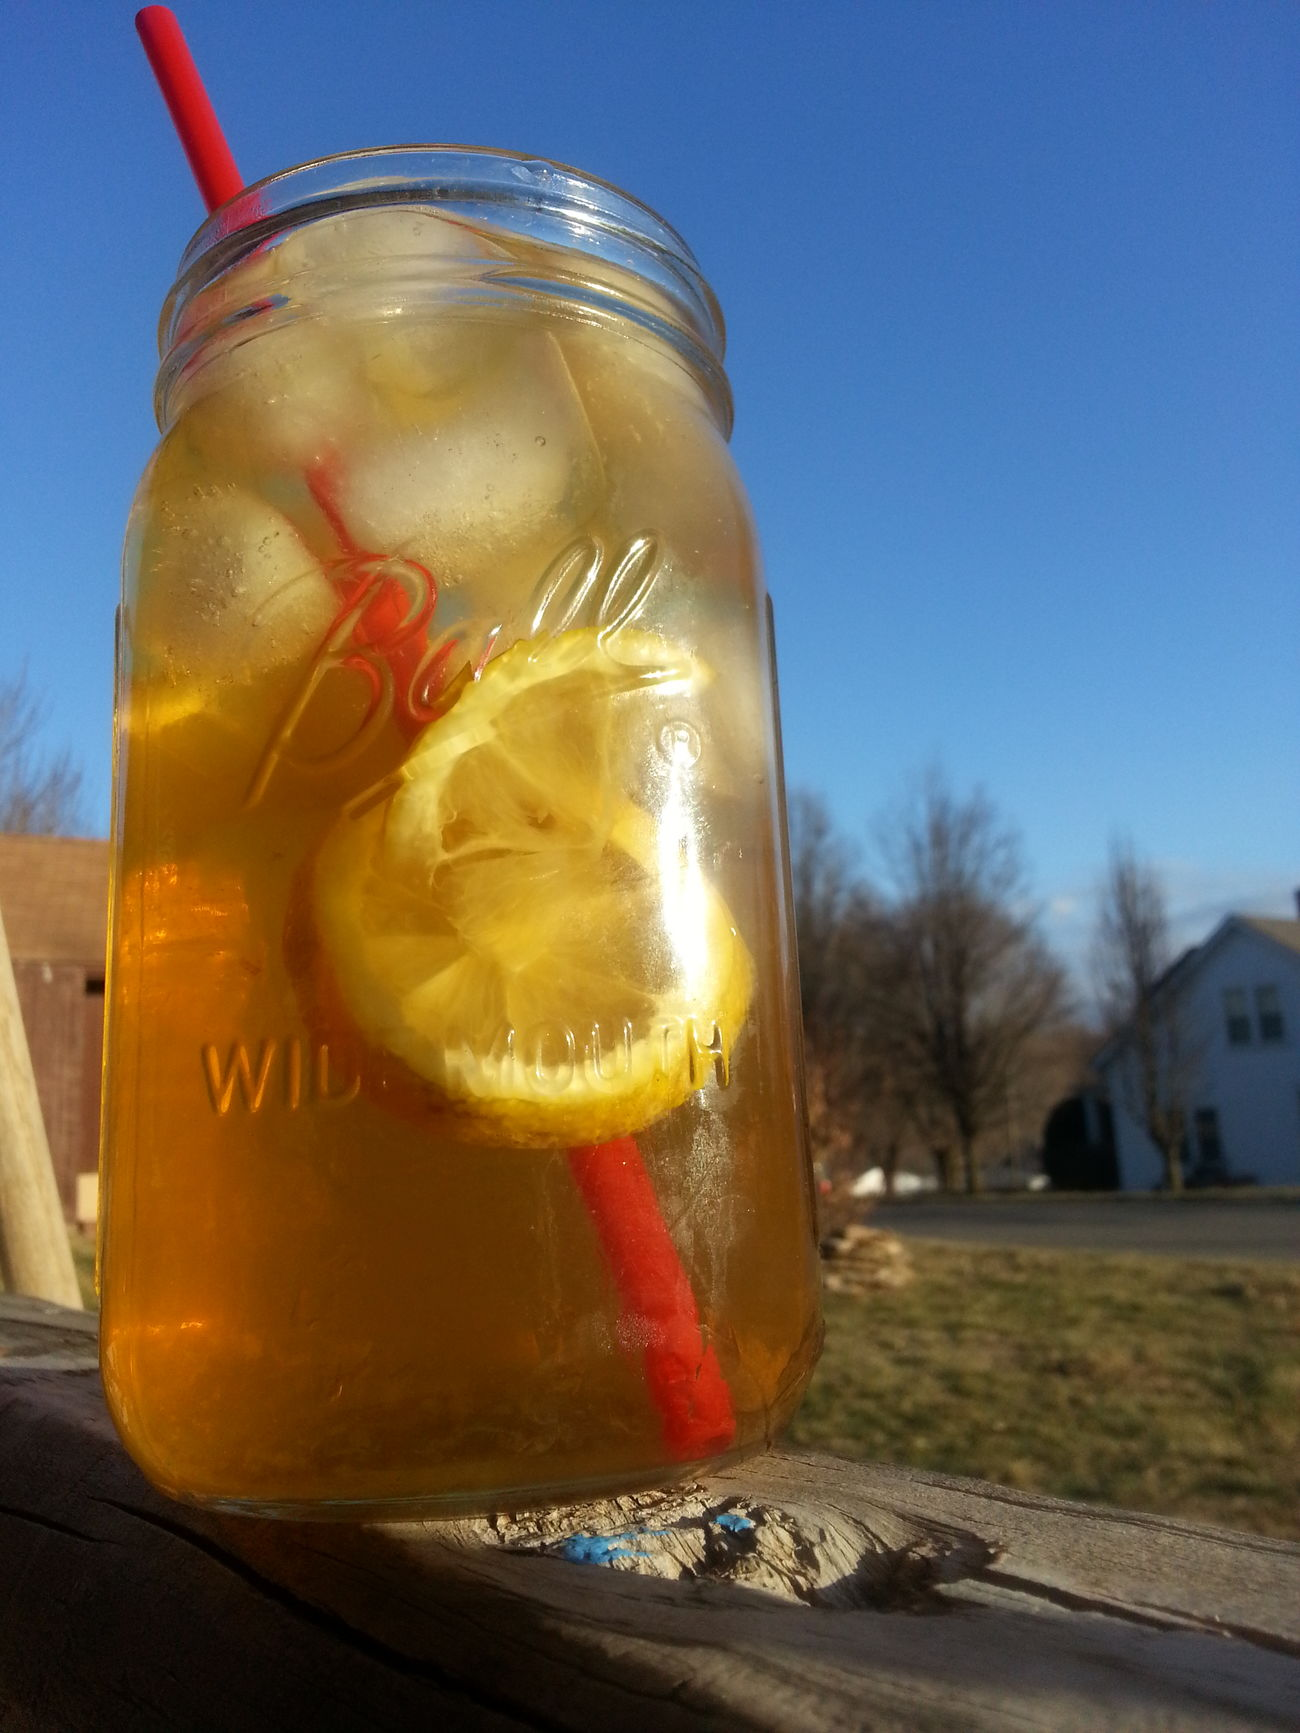 Sunny & 75... Relaxing Sippin Sweet Tea Lemon Porch Porch Therapy Chillin' Drinks Missouri Small Town USA